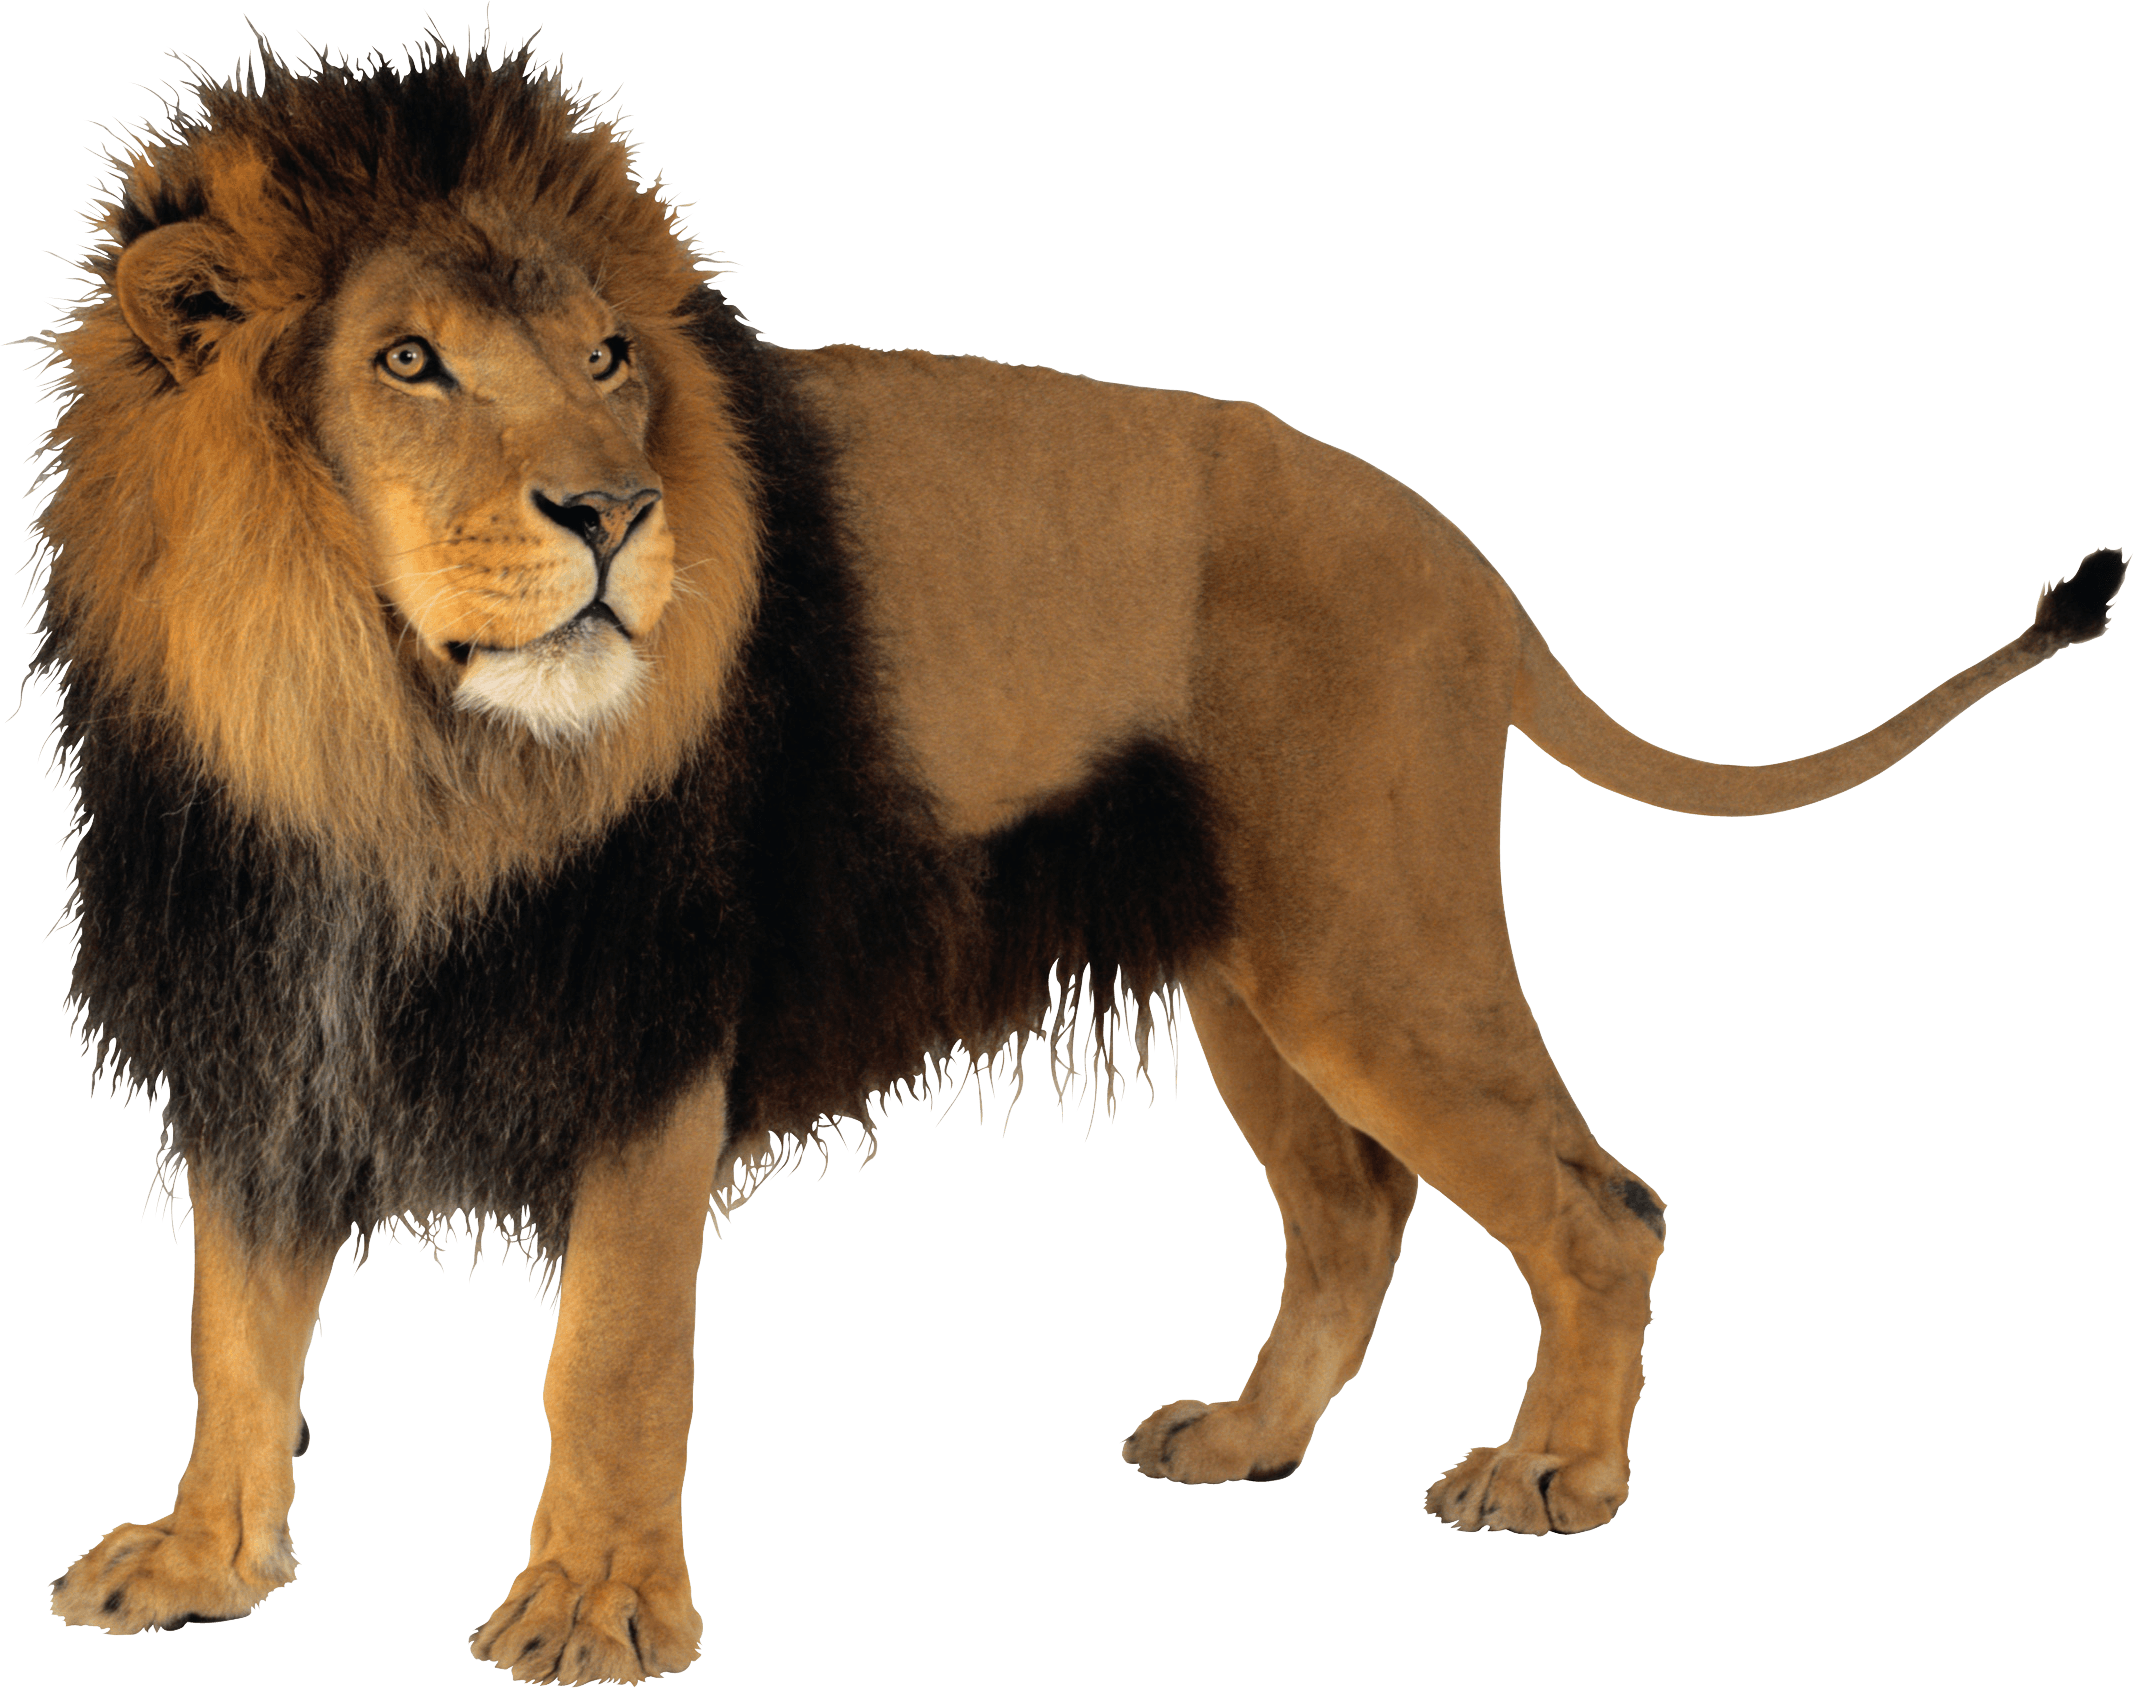 Lion Png Image PNG Image